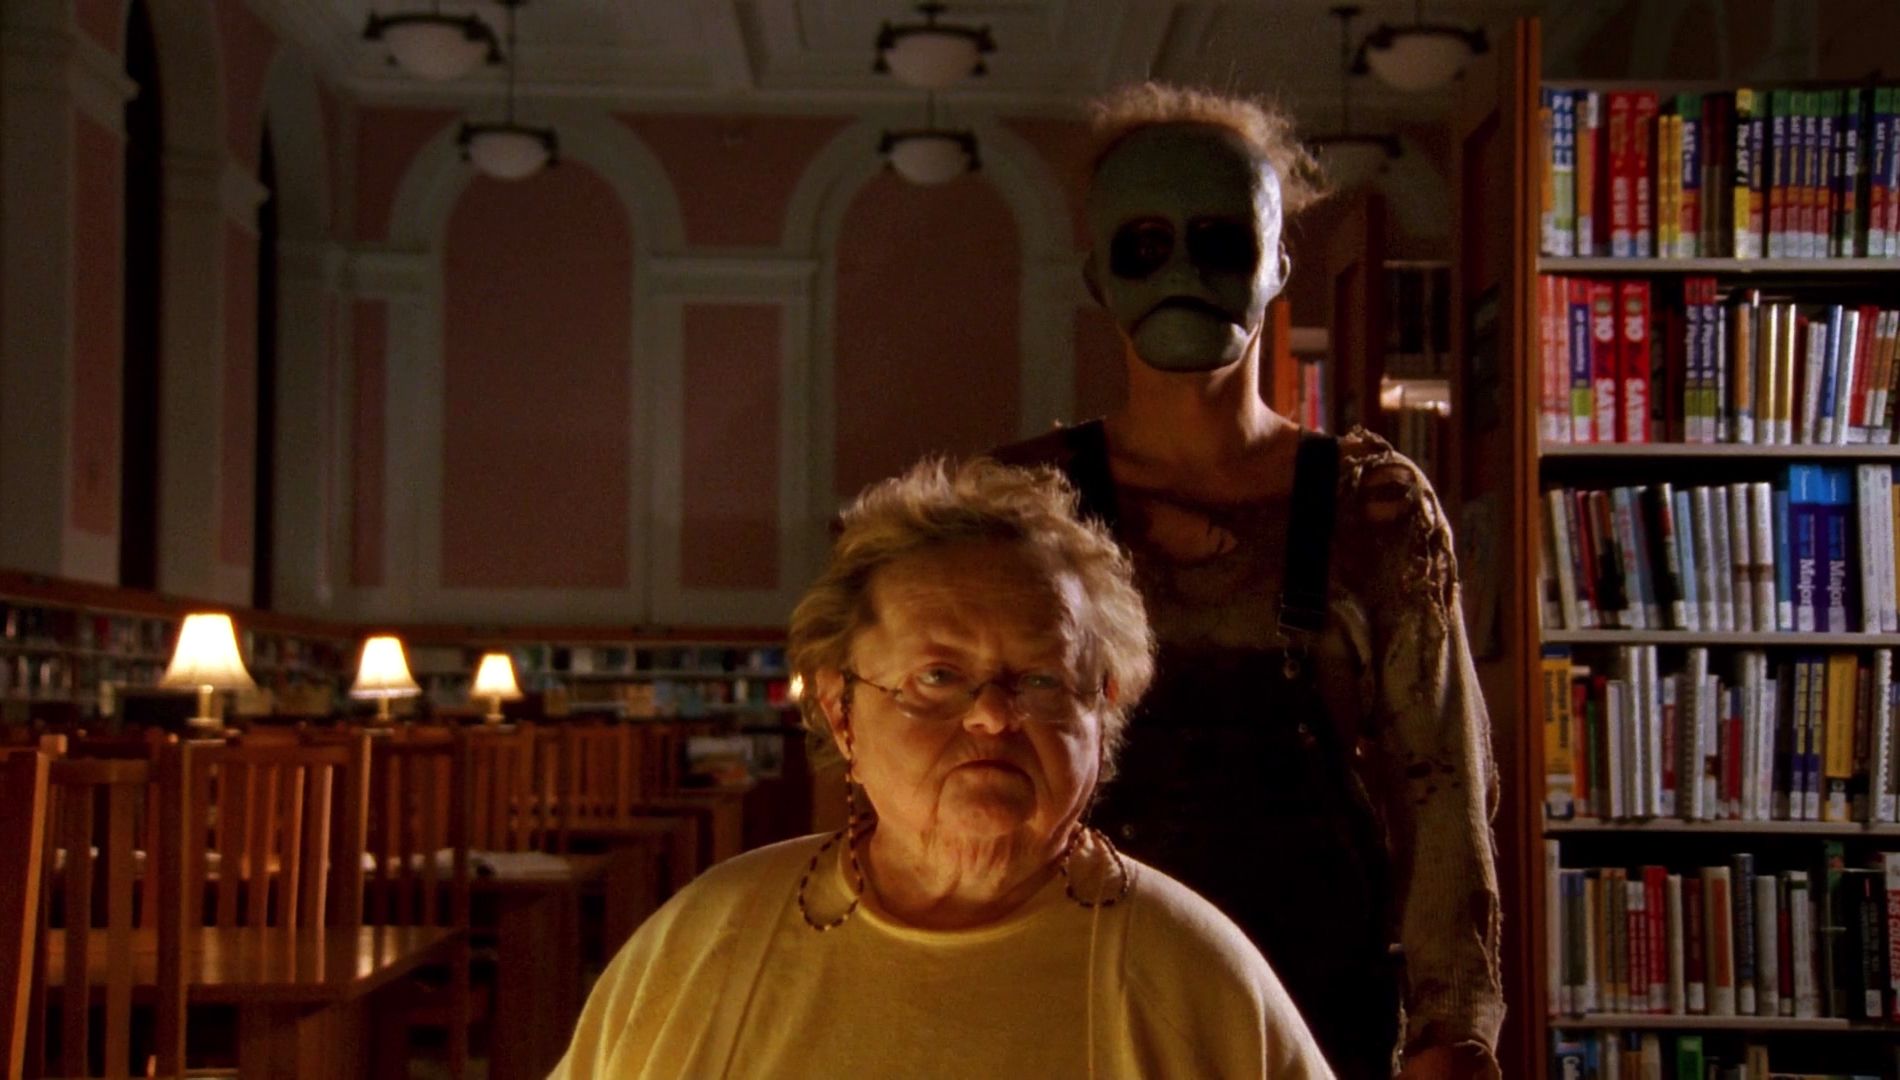 Behind the Mask: The Rise of Leslie Vernon's villain stands behind Zelda Rubinstein's character